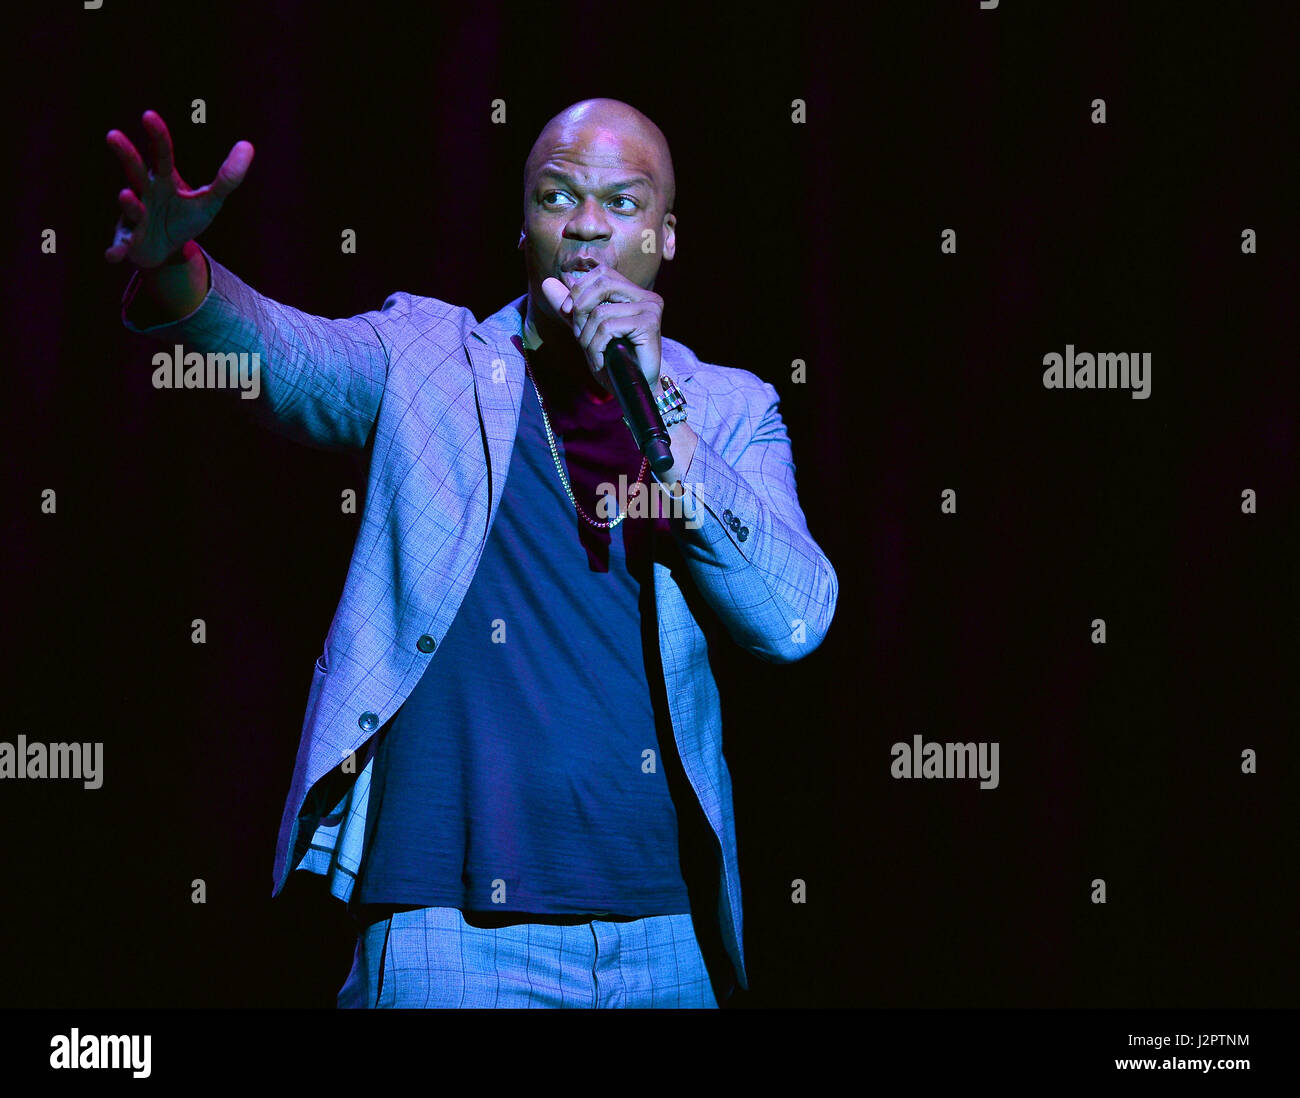 Ardie Fuqua performing at Hard Rock Live at Seminole Hard Rock Hotel & Casino in Hollywood  Featuring: Ardie - Stock Image